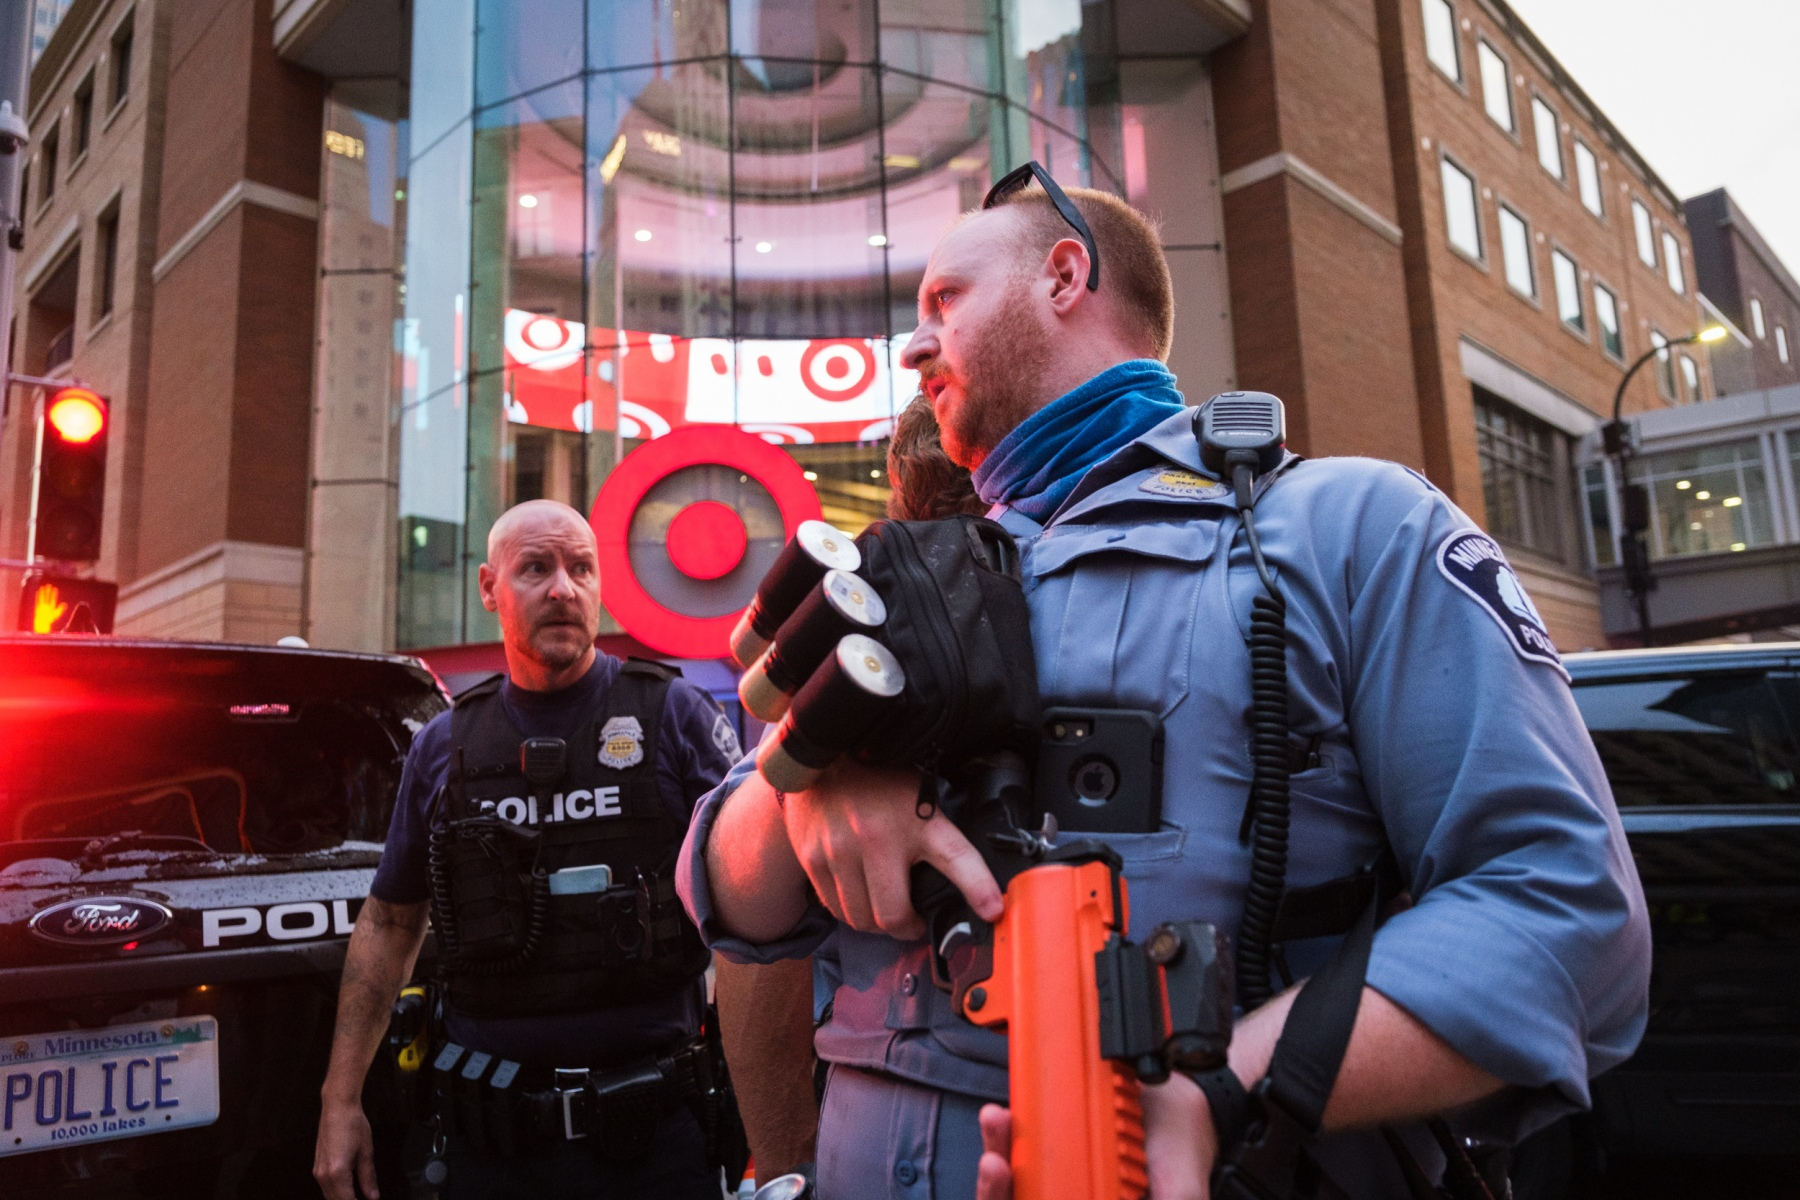 A Minneapolis police officer holding a projectile-launcher speaks to a fellow officer as bystanders continue to gather on August 26, 2020.